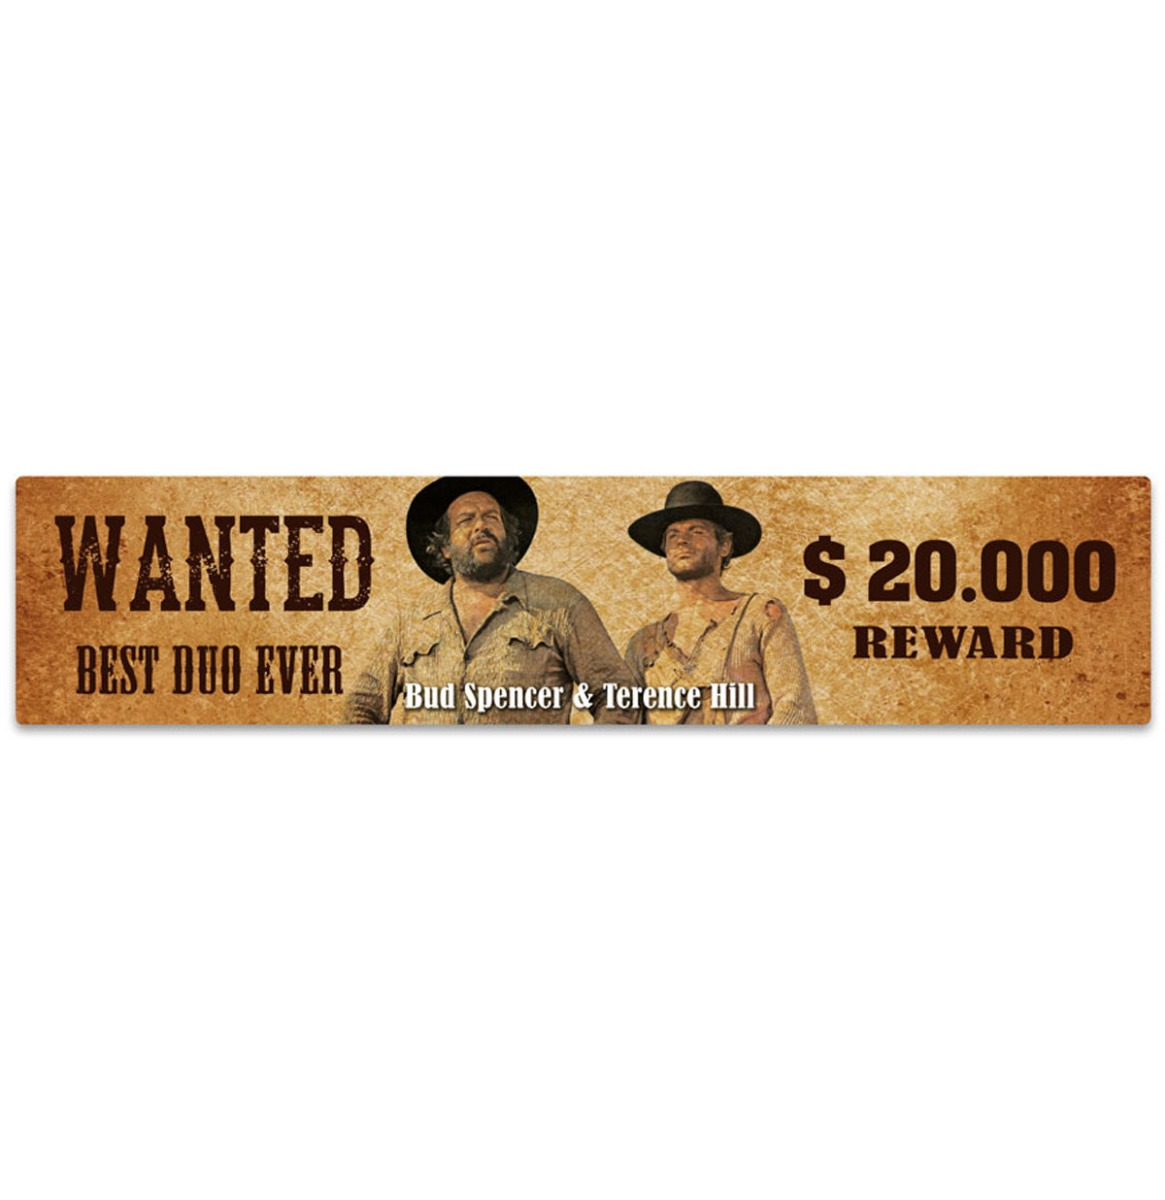 Bud Spencer Terence Hill Best Duo Ever 20.000 Reward Street Sign Magneet 16 x 3,5 cm